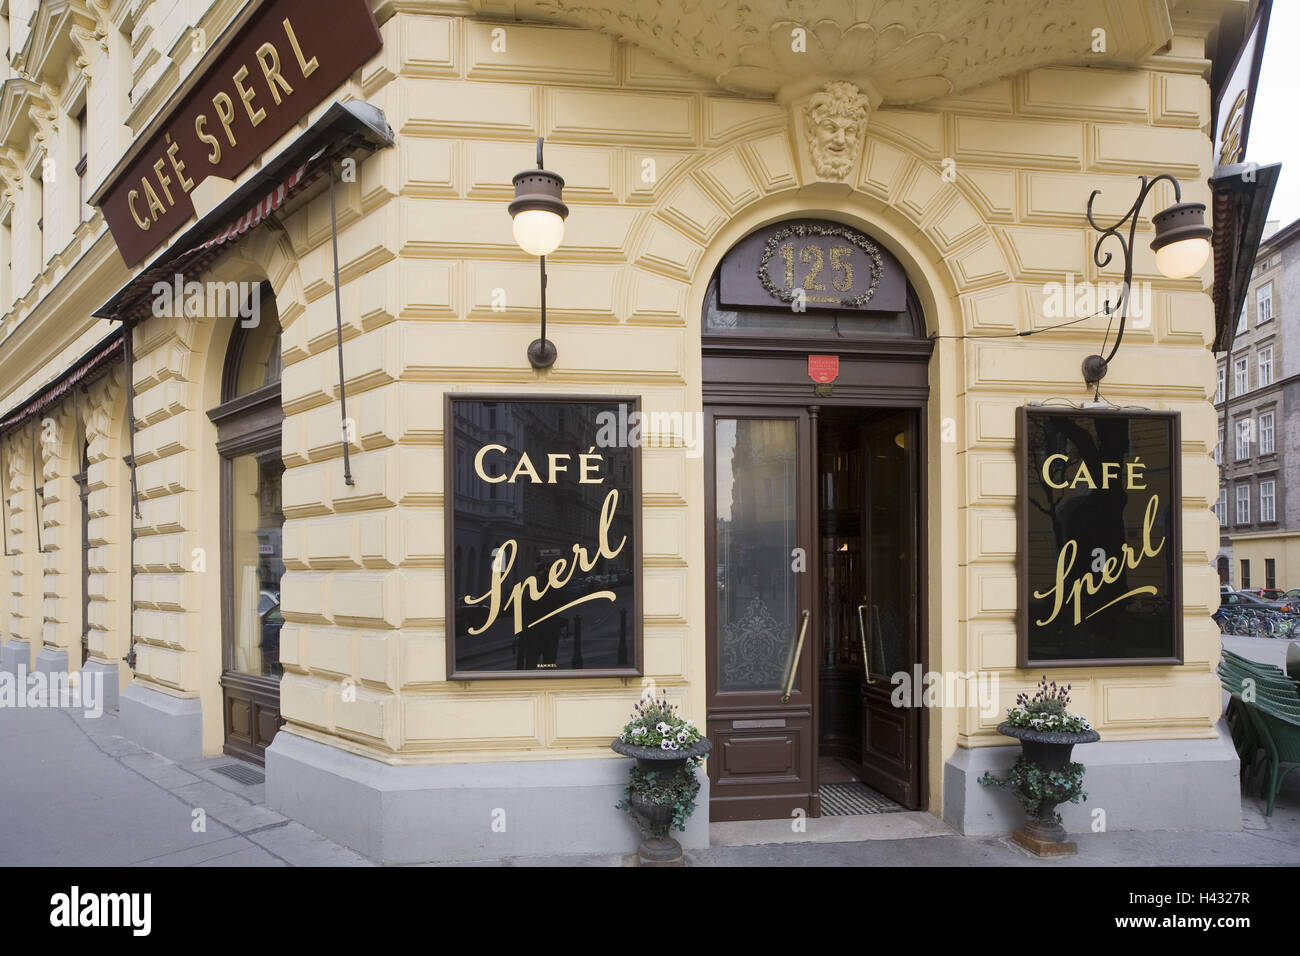 Austria, Vienna, Cafe Sperl, Cafe in retro styled building - Stock Image